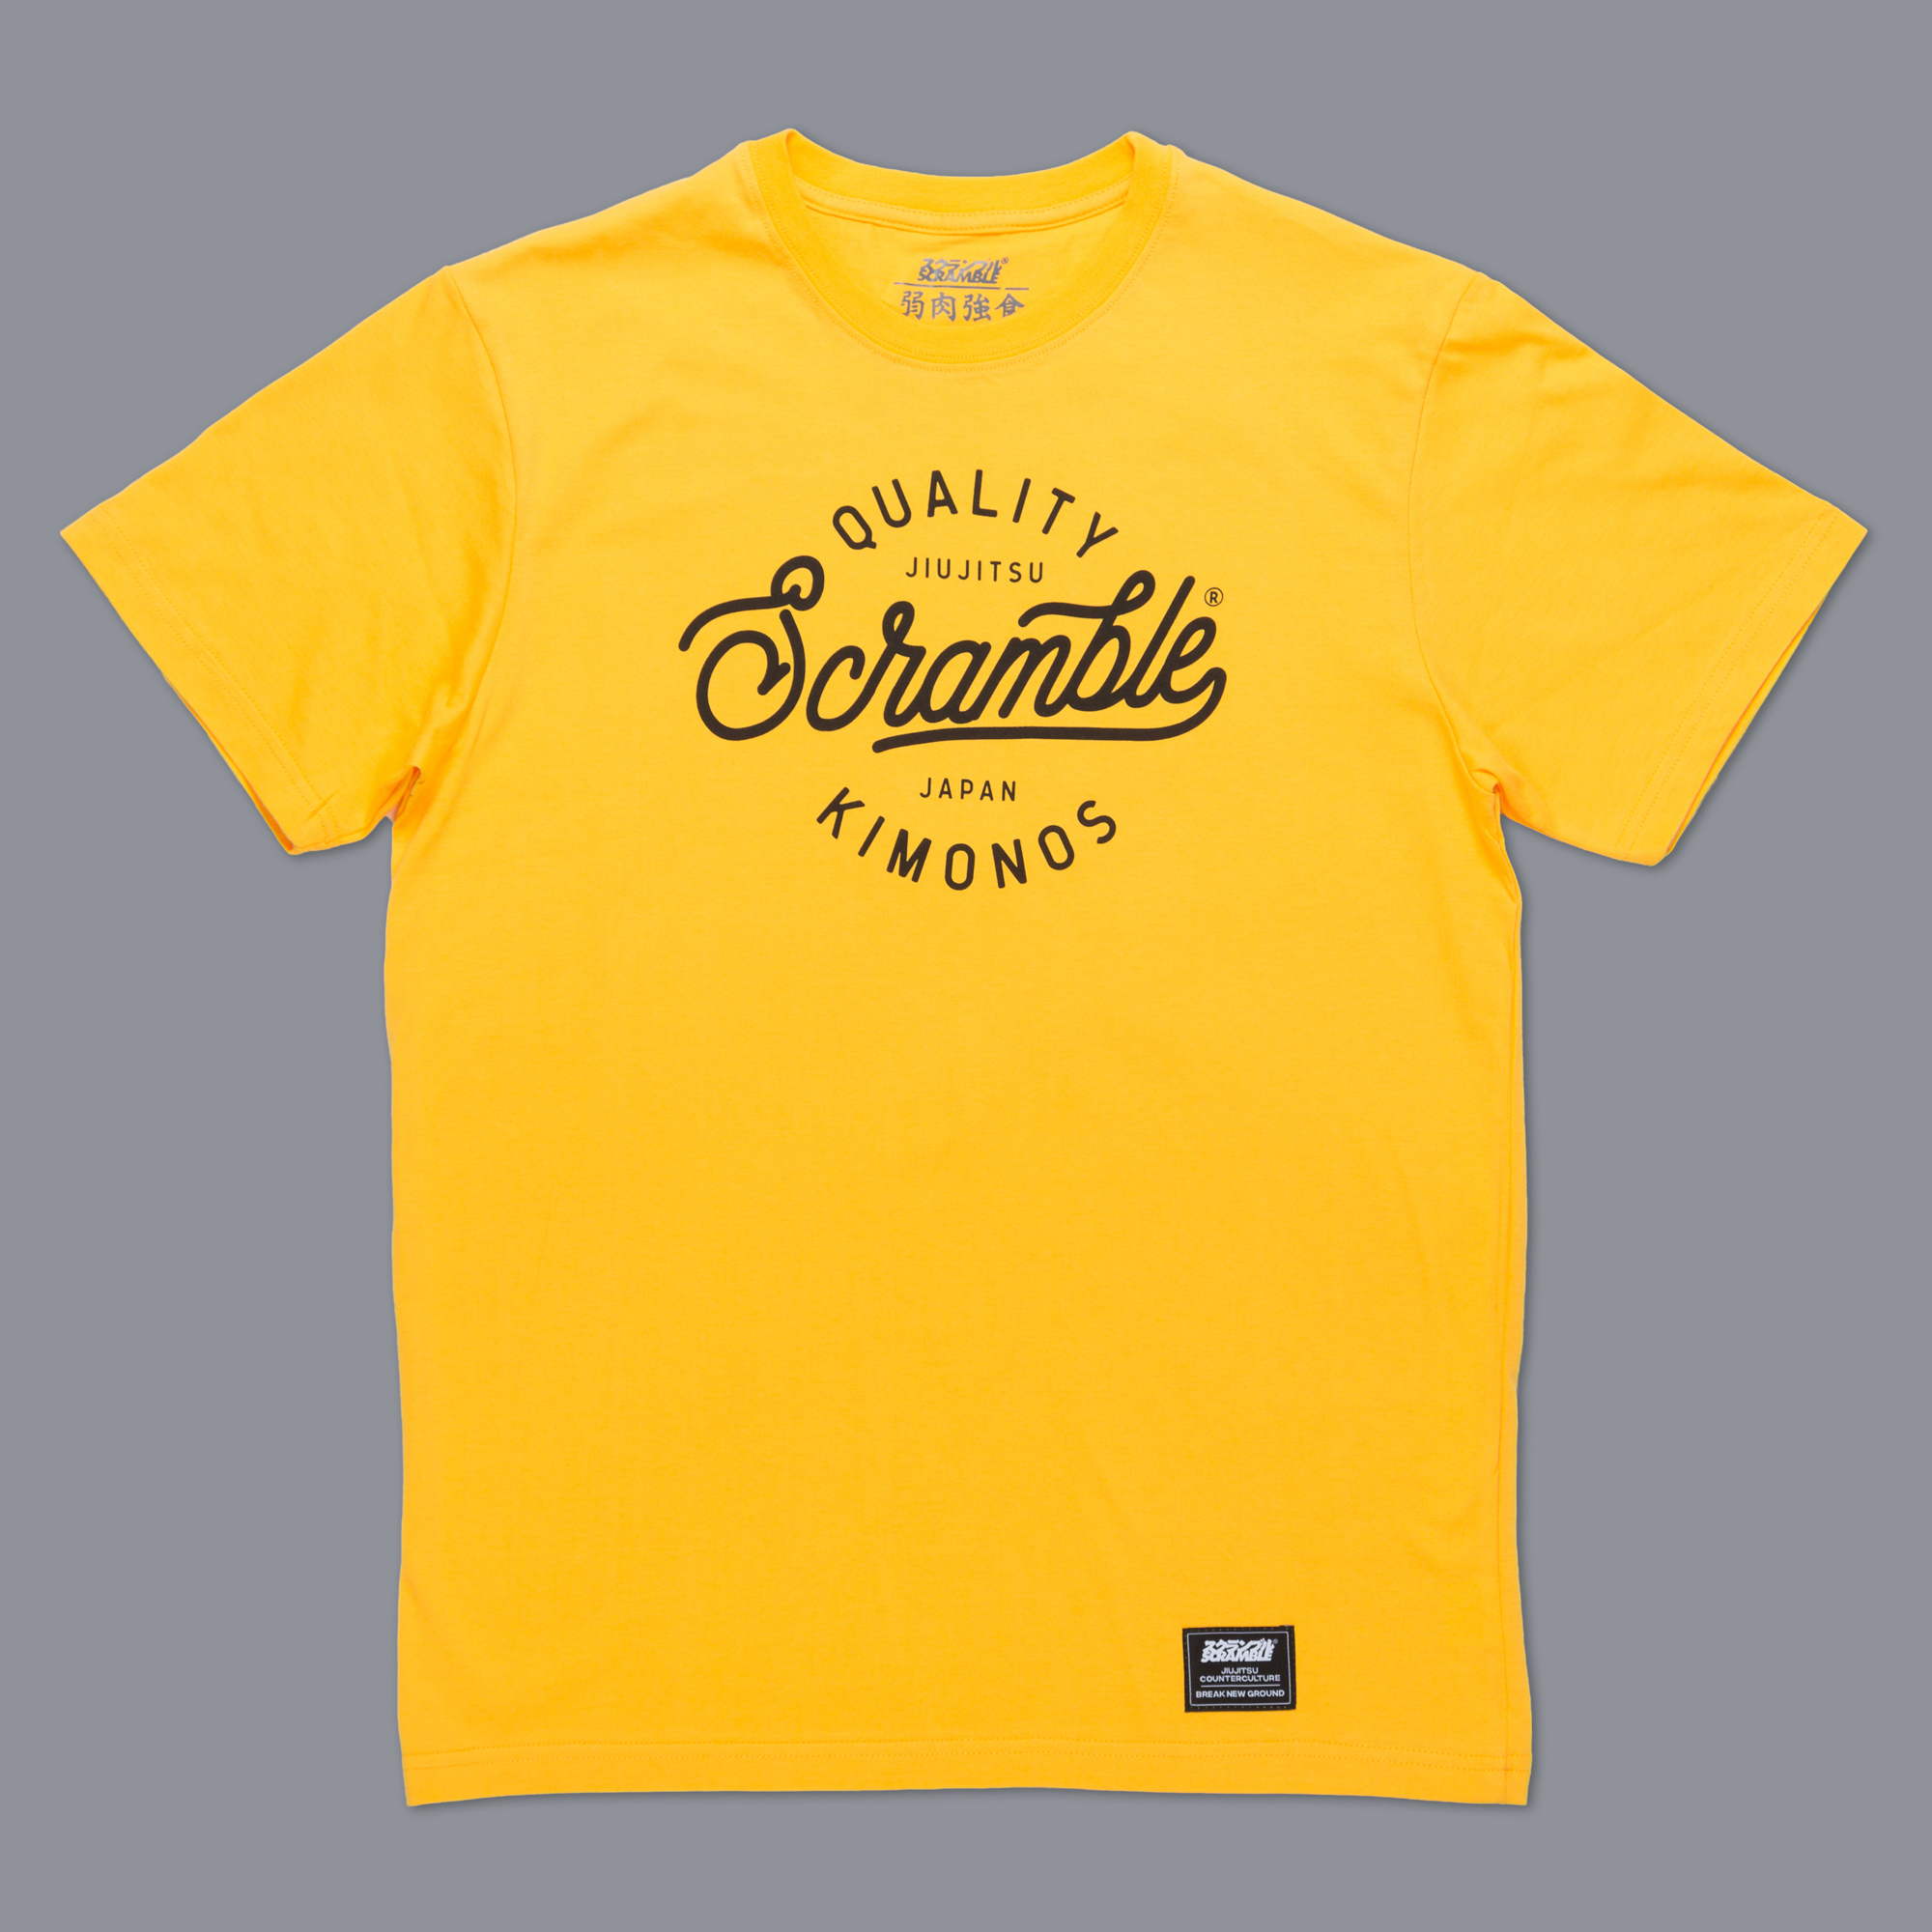 Scramble Quality Kimonos Tee - Yellow|格闘技、柔術Tシャツ